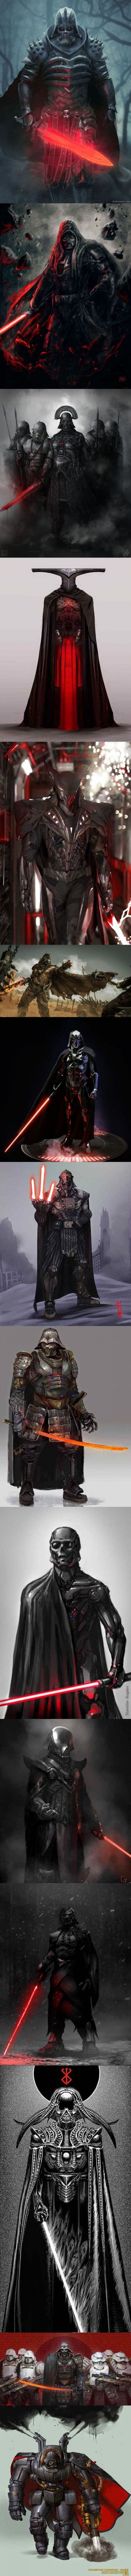 Fan Art Reimagined Darth Vader                                                                                                                                                                                 More